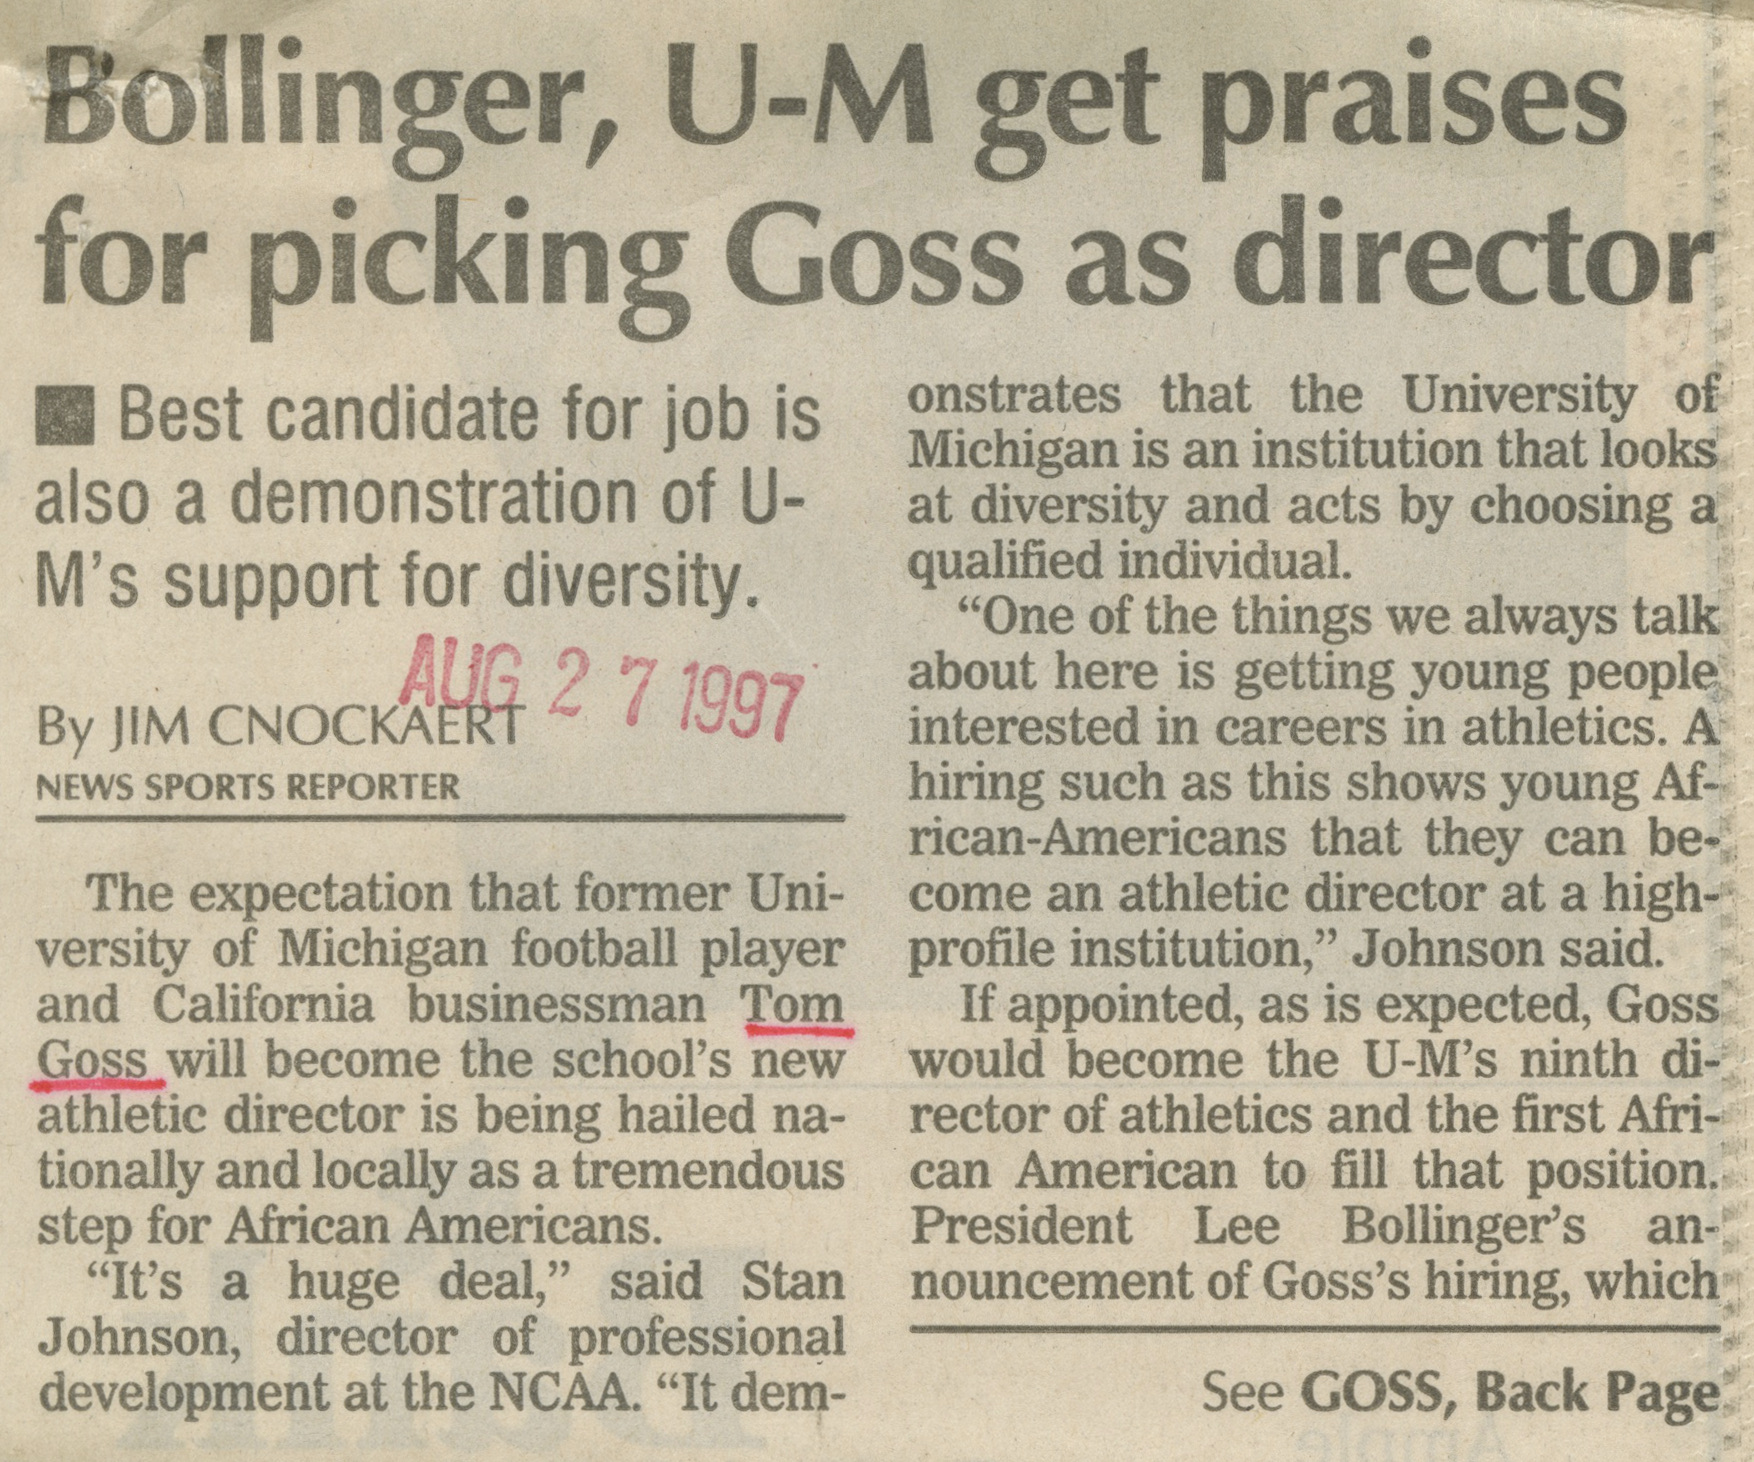 Bollinger, U-M get praises for picking Goss as director image